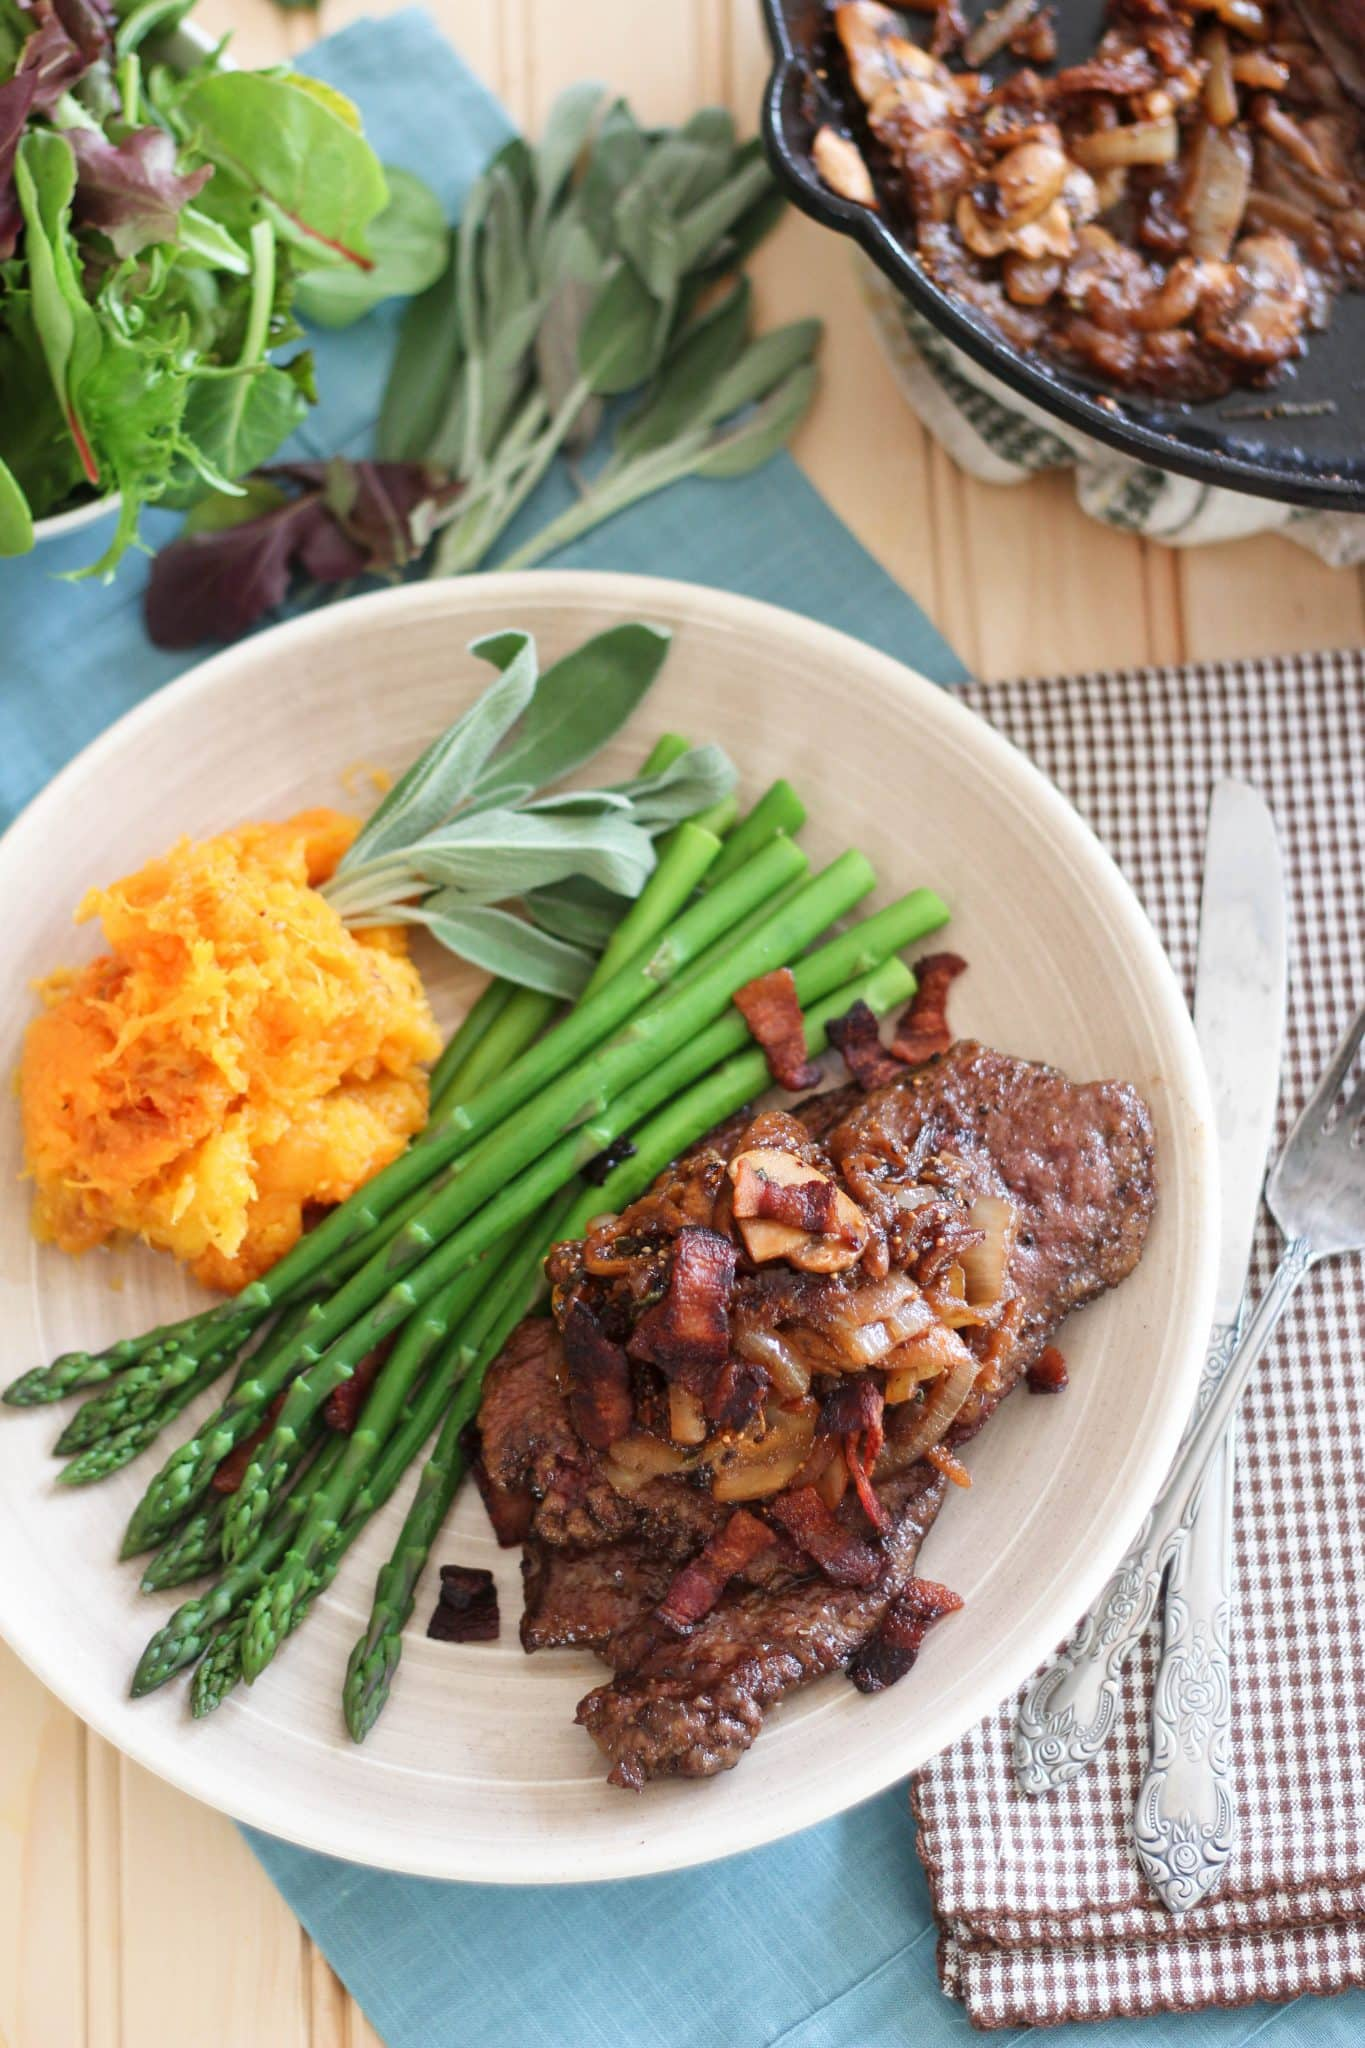 Need a great beef recipe tonight? I have 60 recipes that use every cut of beef!